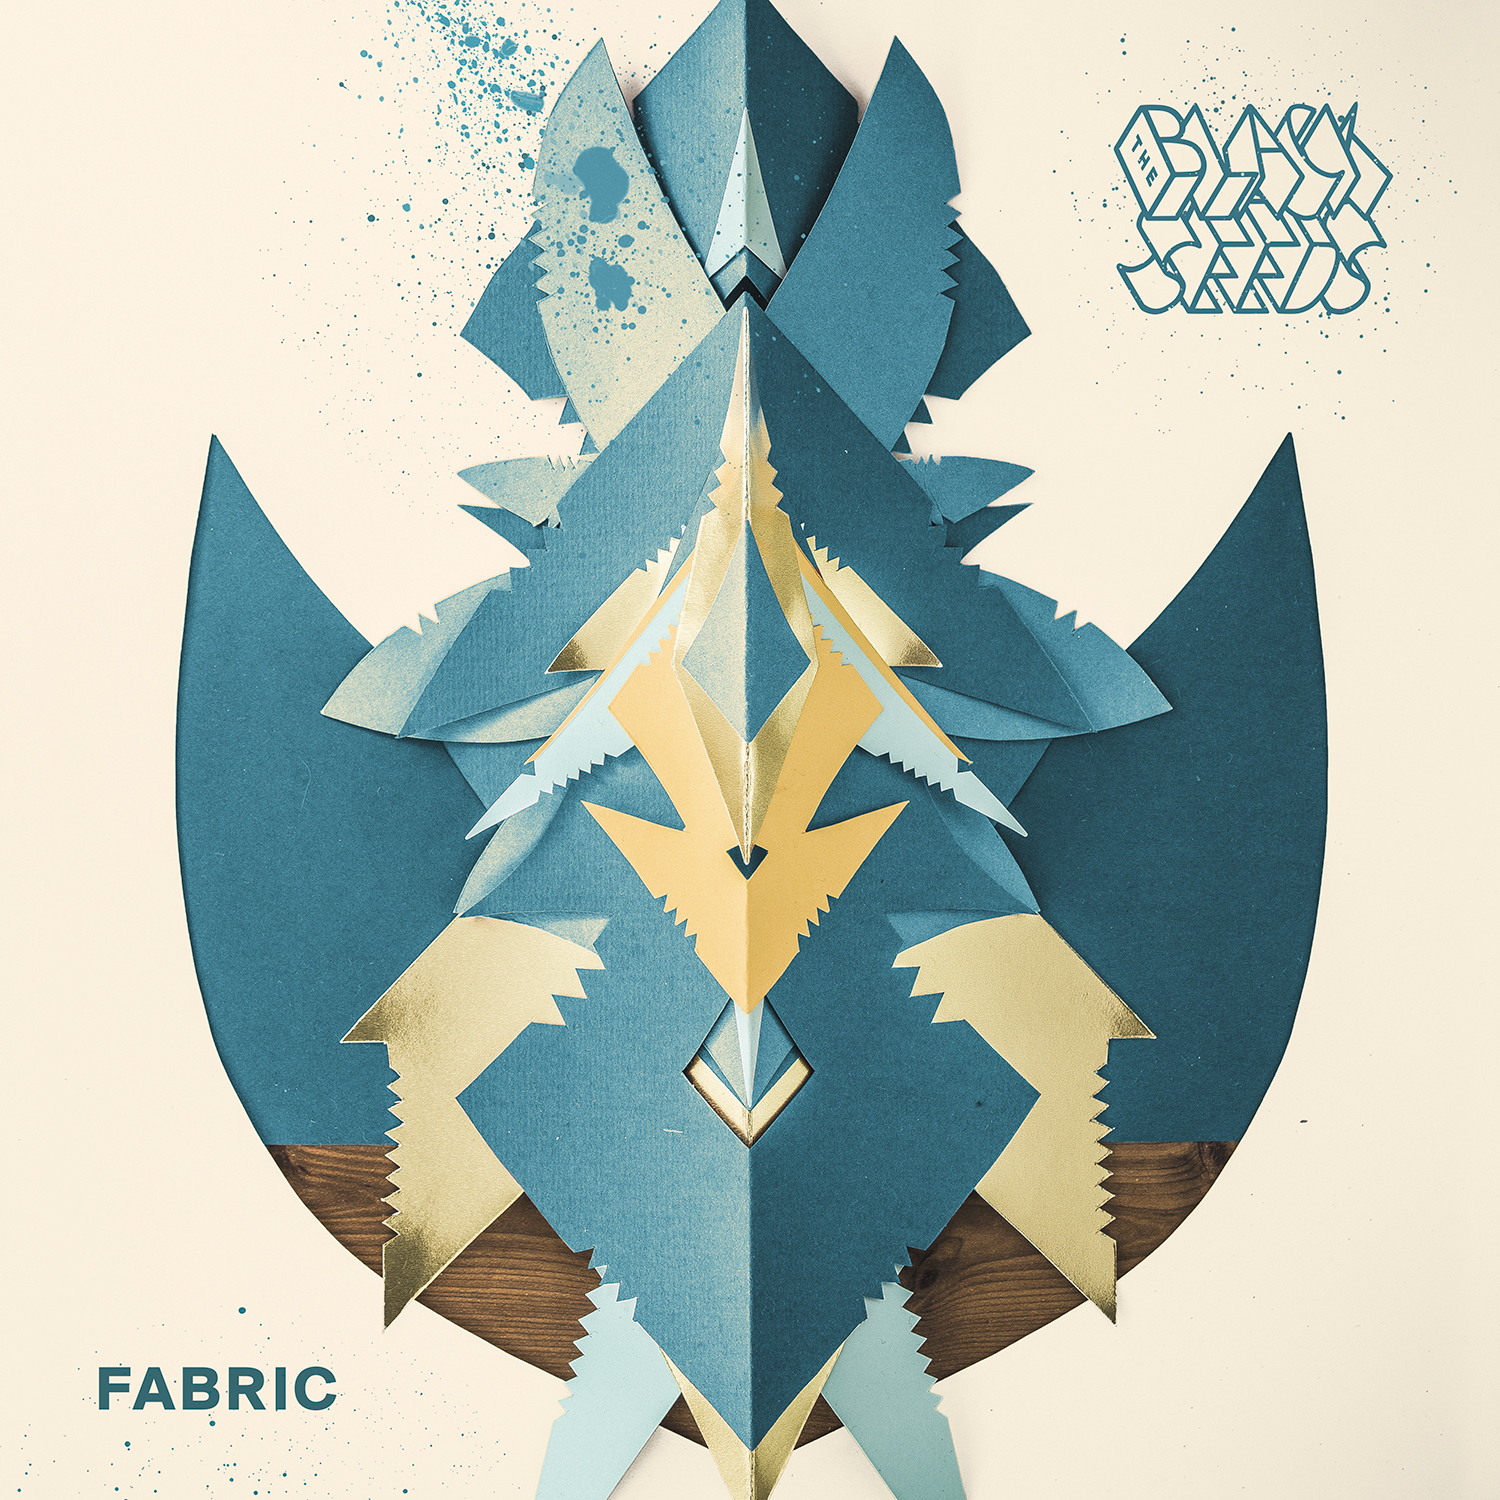 The Black Seeds – Fabric